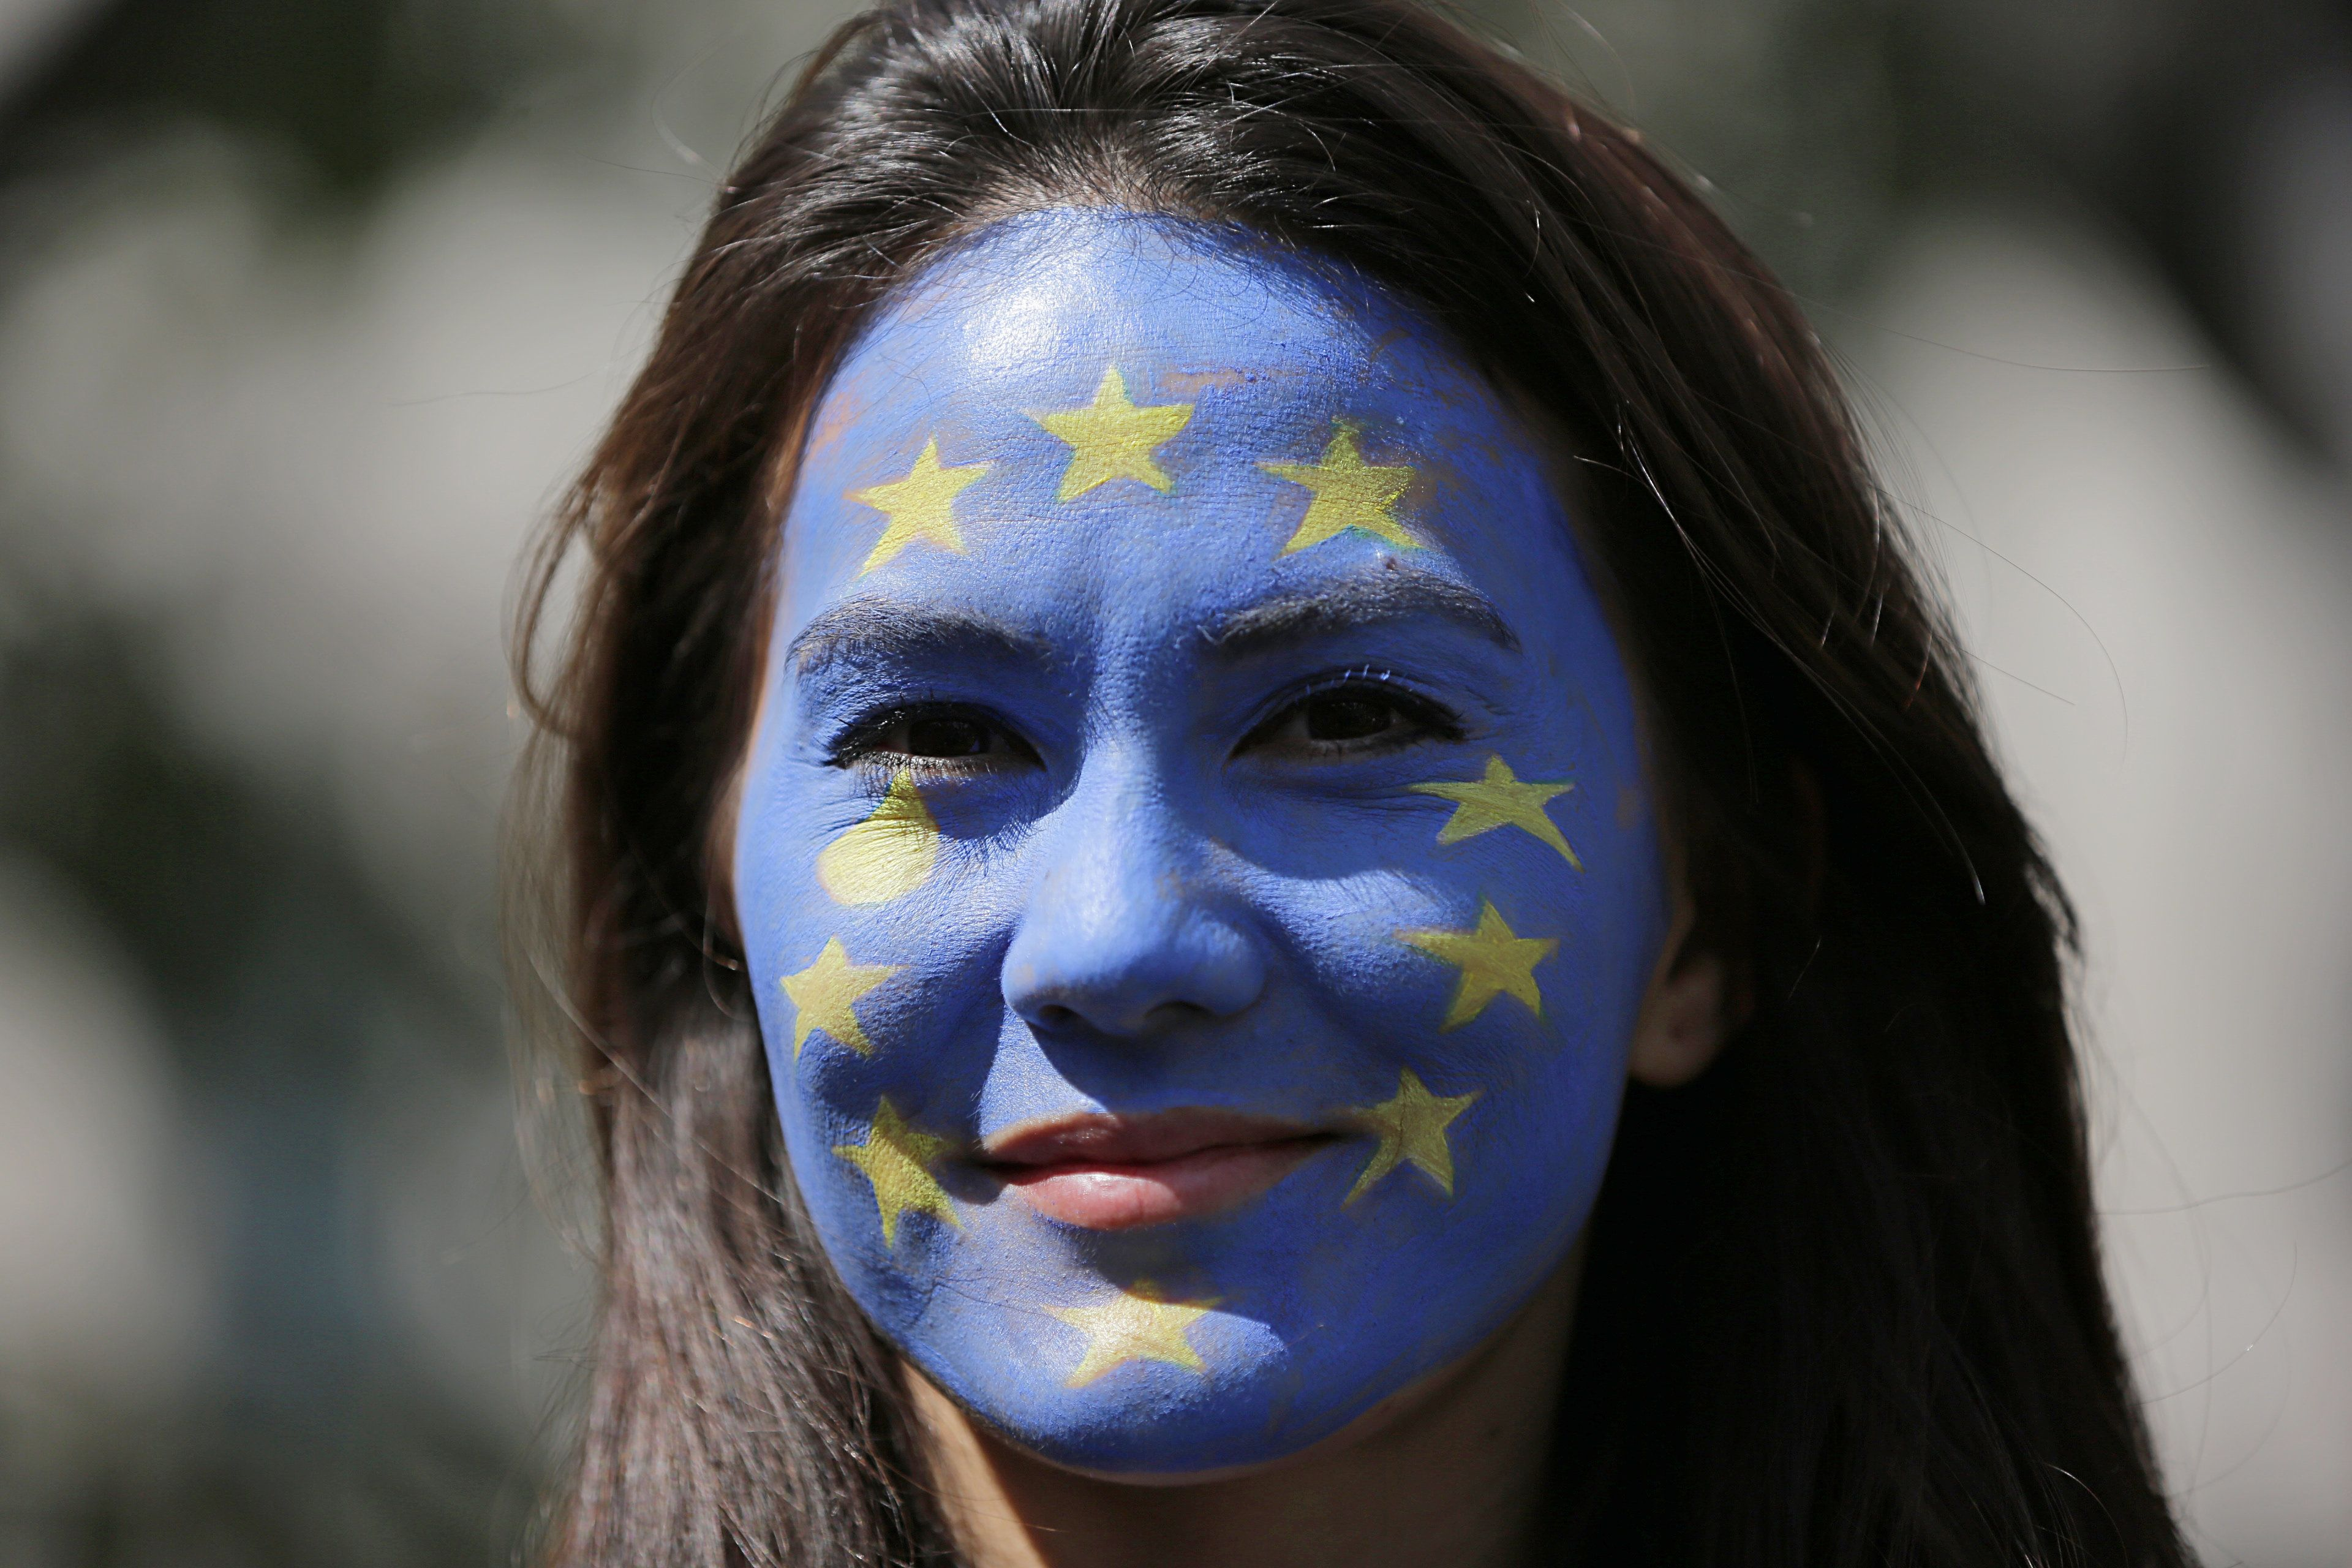 Those who want to keep the benefits of EU citizenship could be able to pay for